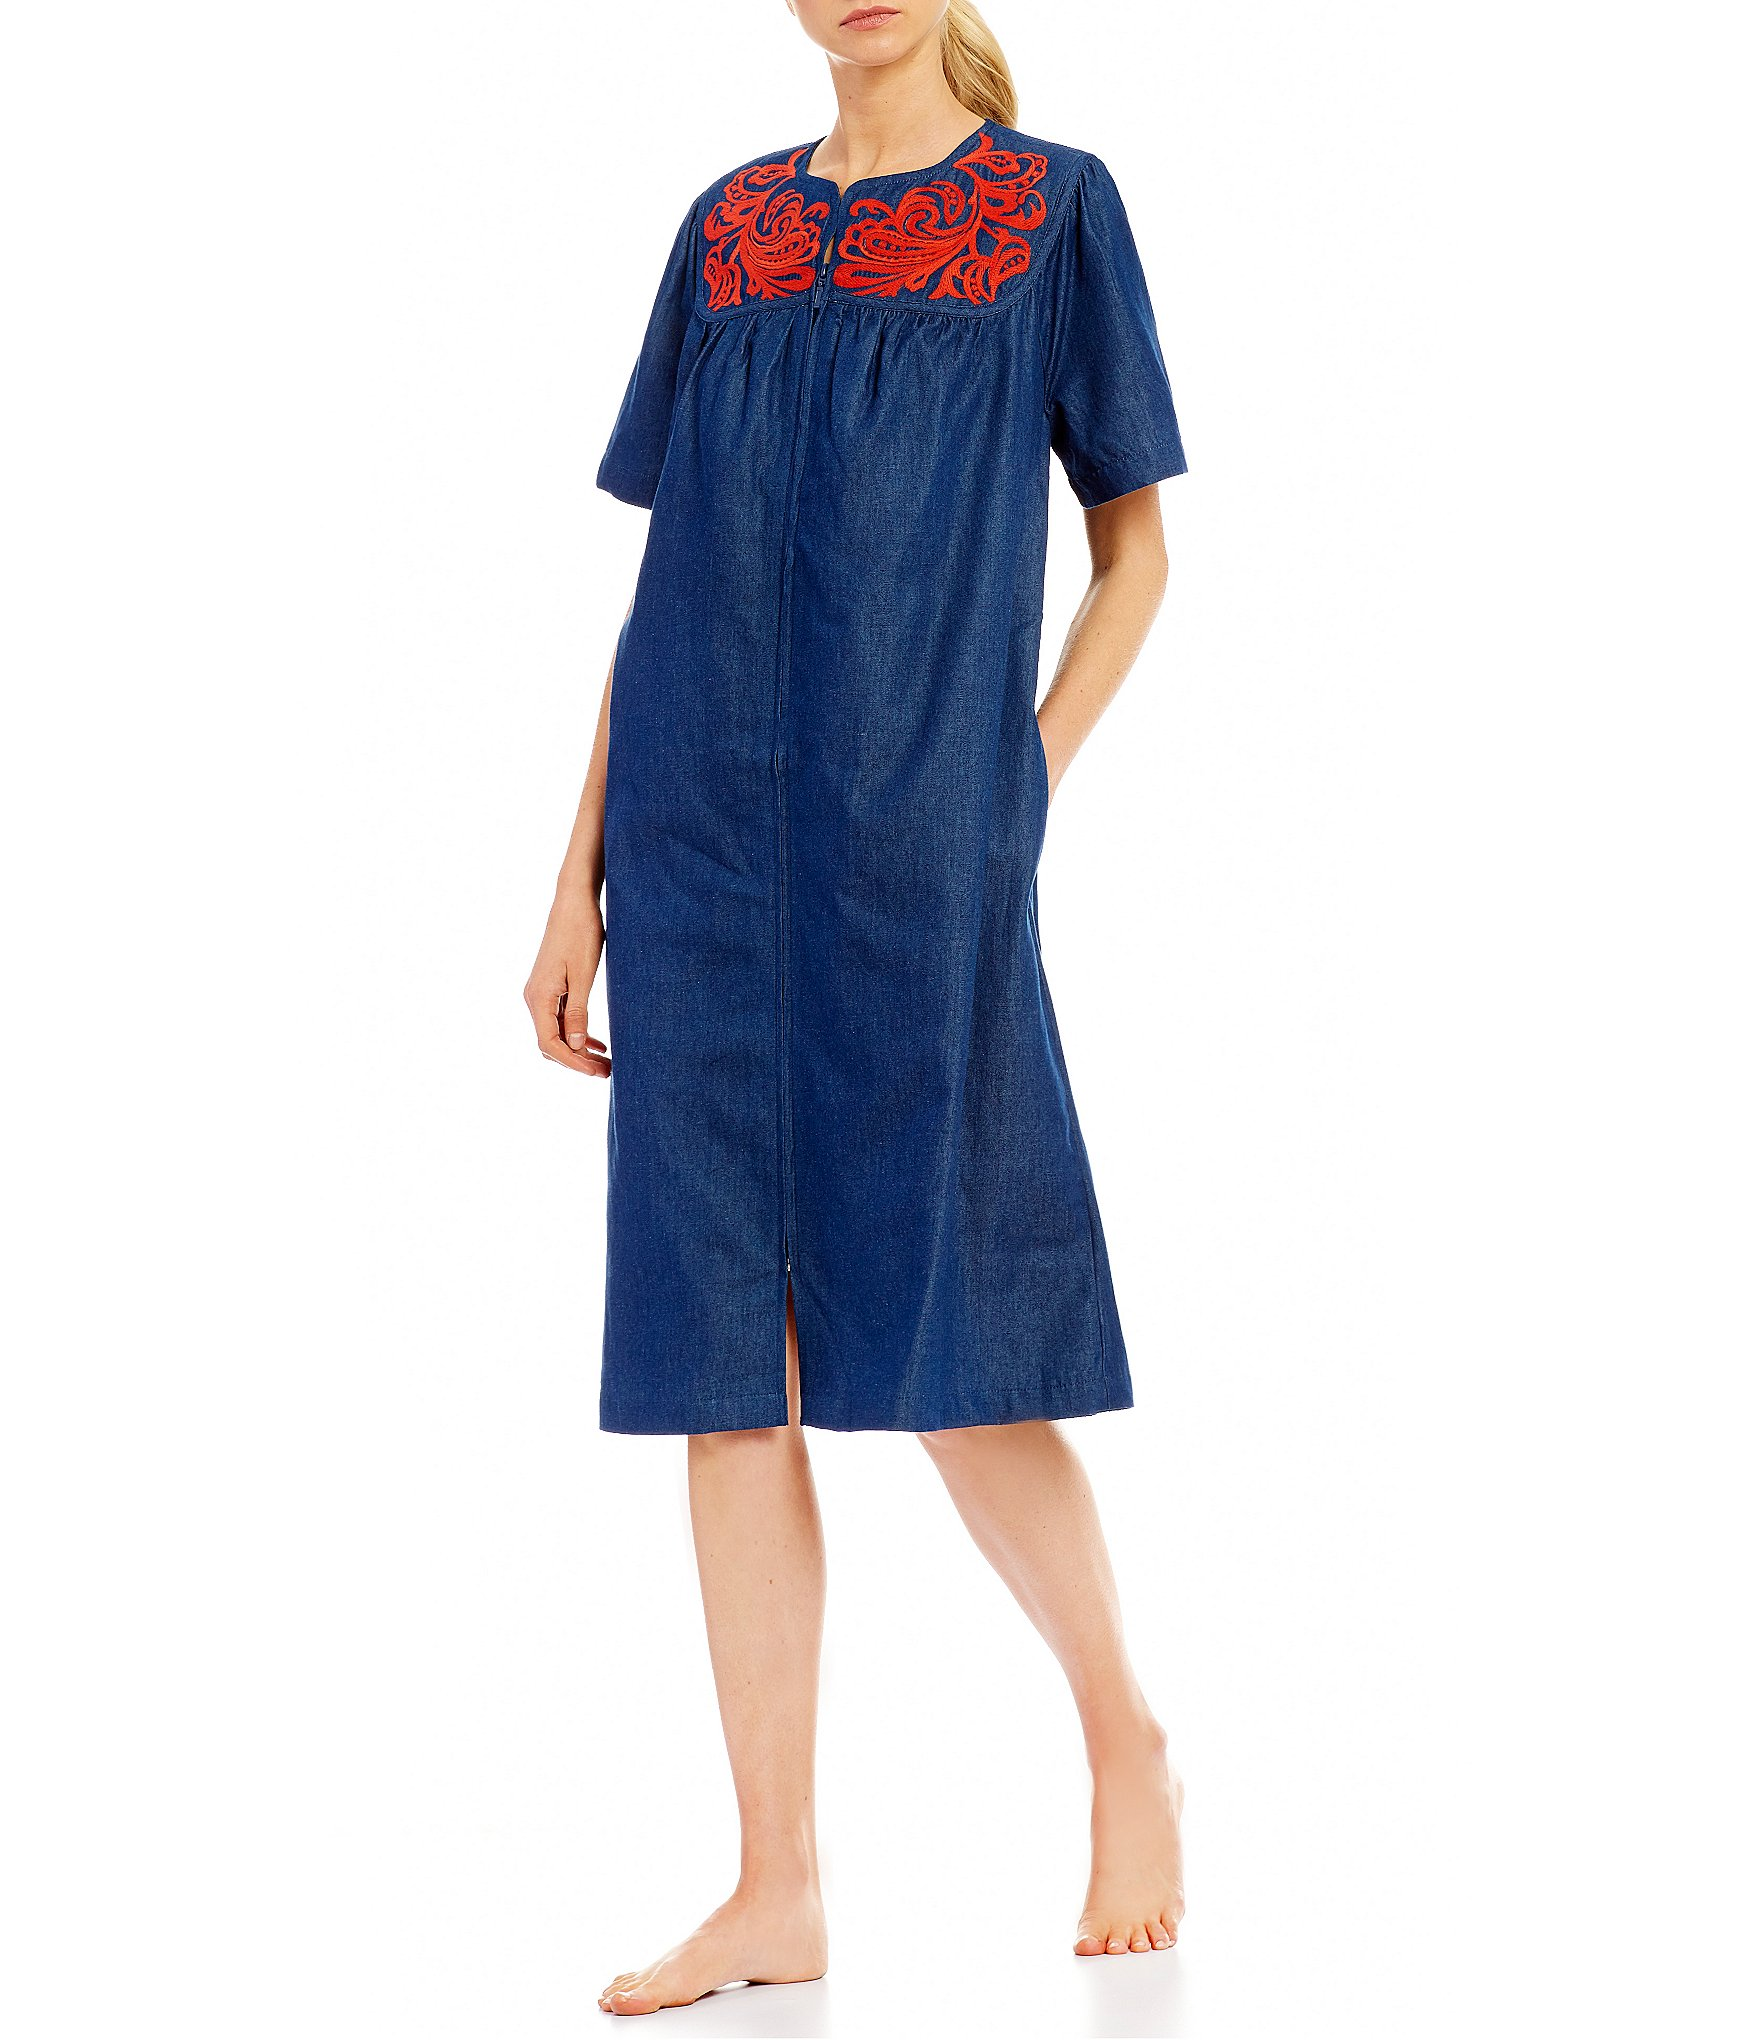 Go Softly Paisley Embroidered Denim Patio Dress Dillards